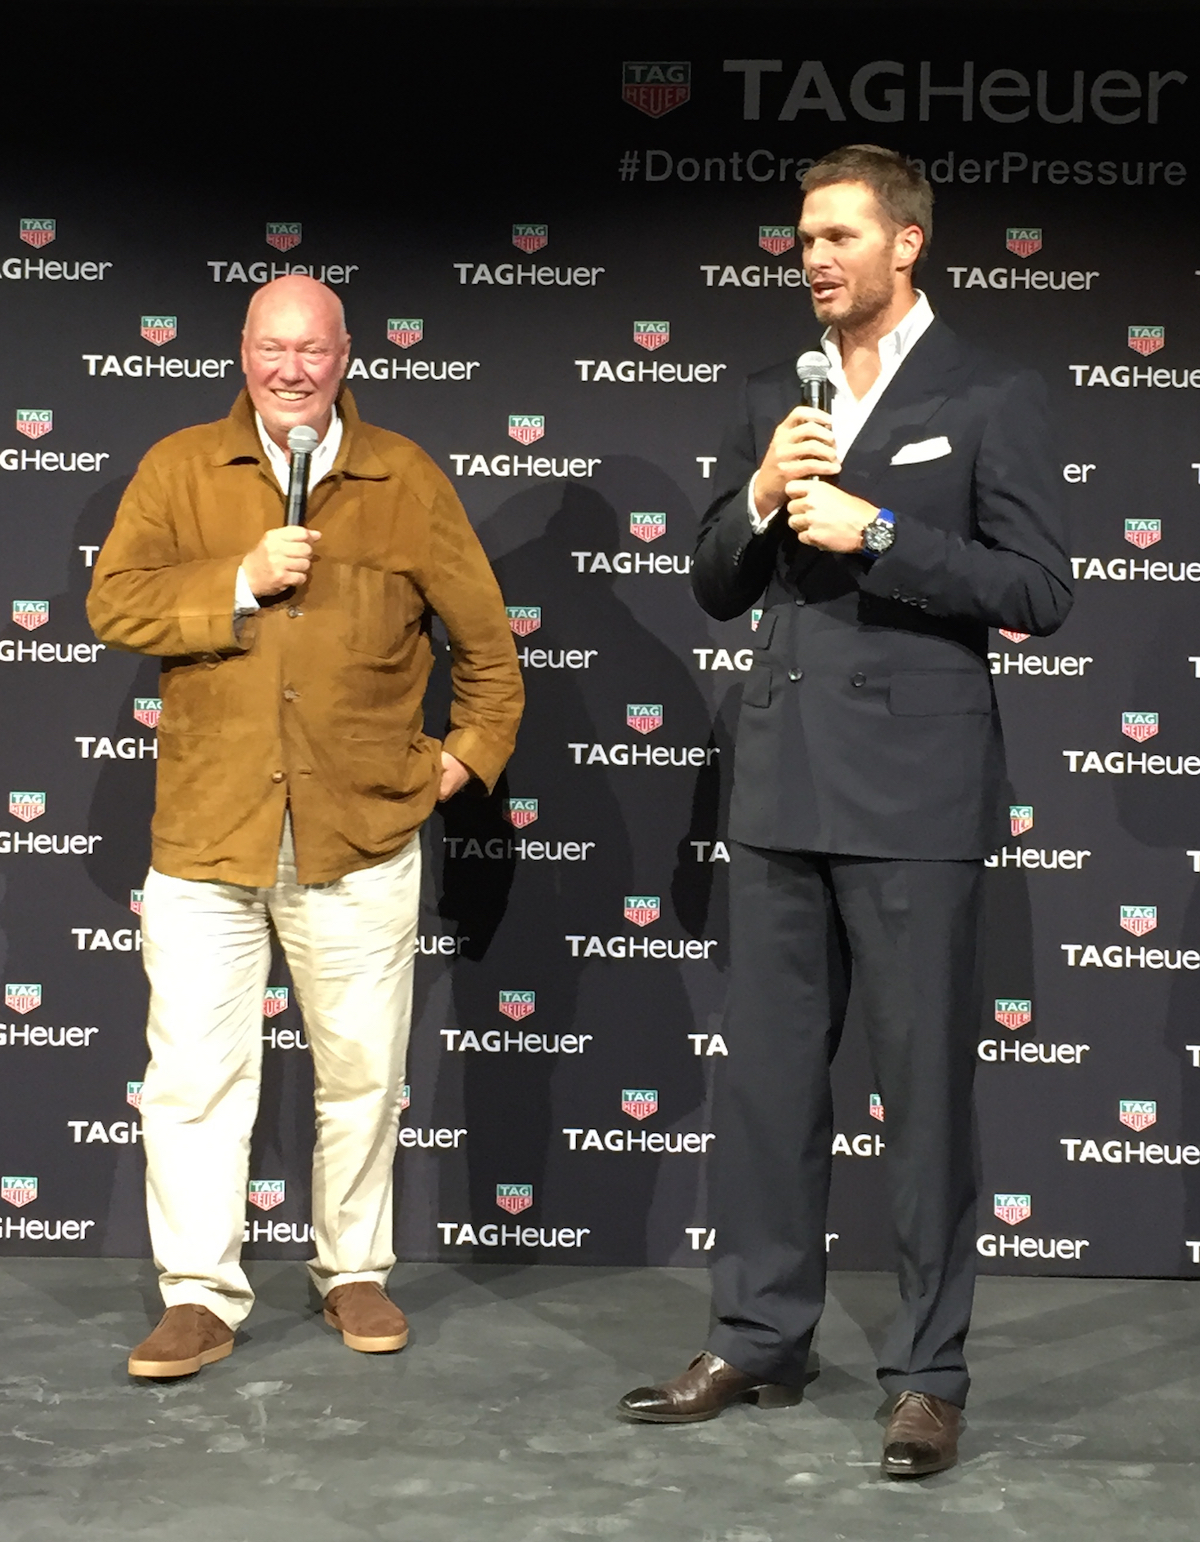 Tom-Brady-tag-heuer--2